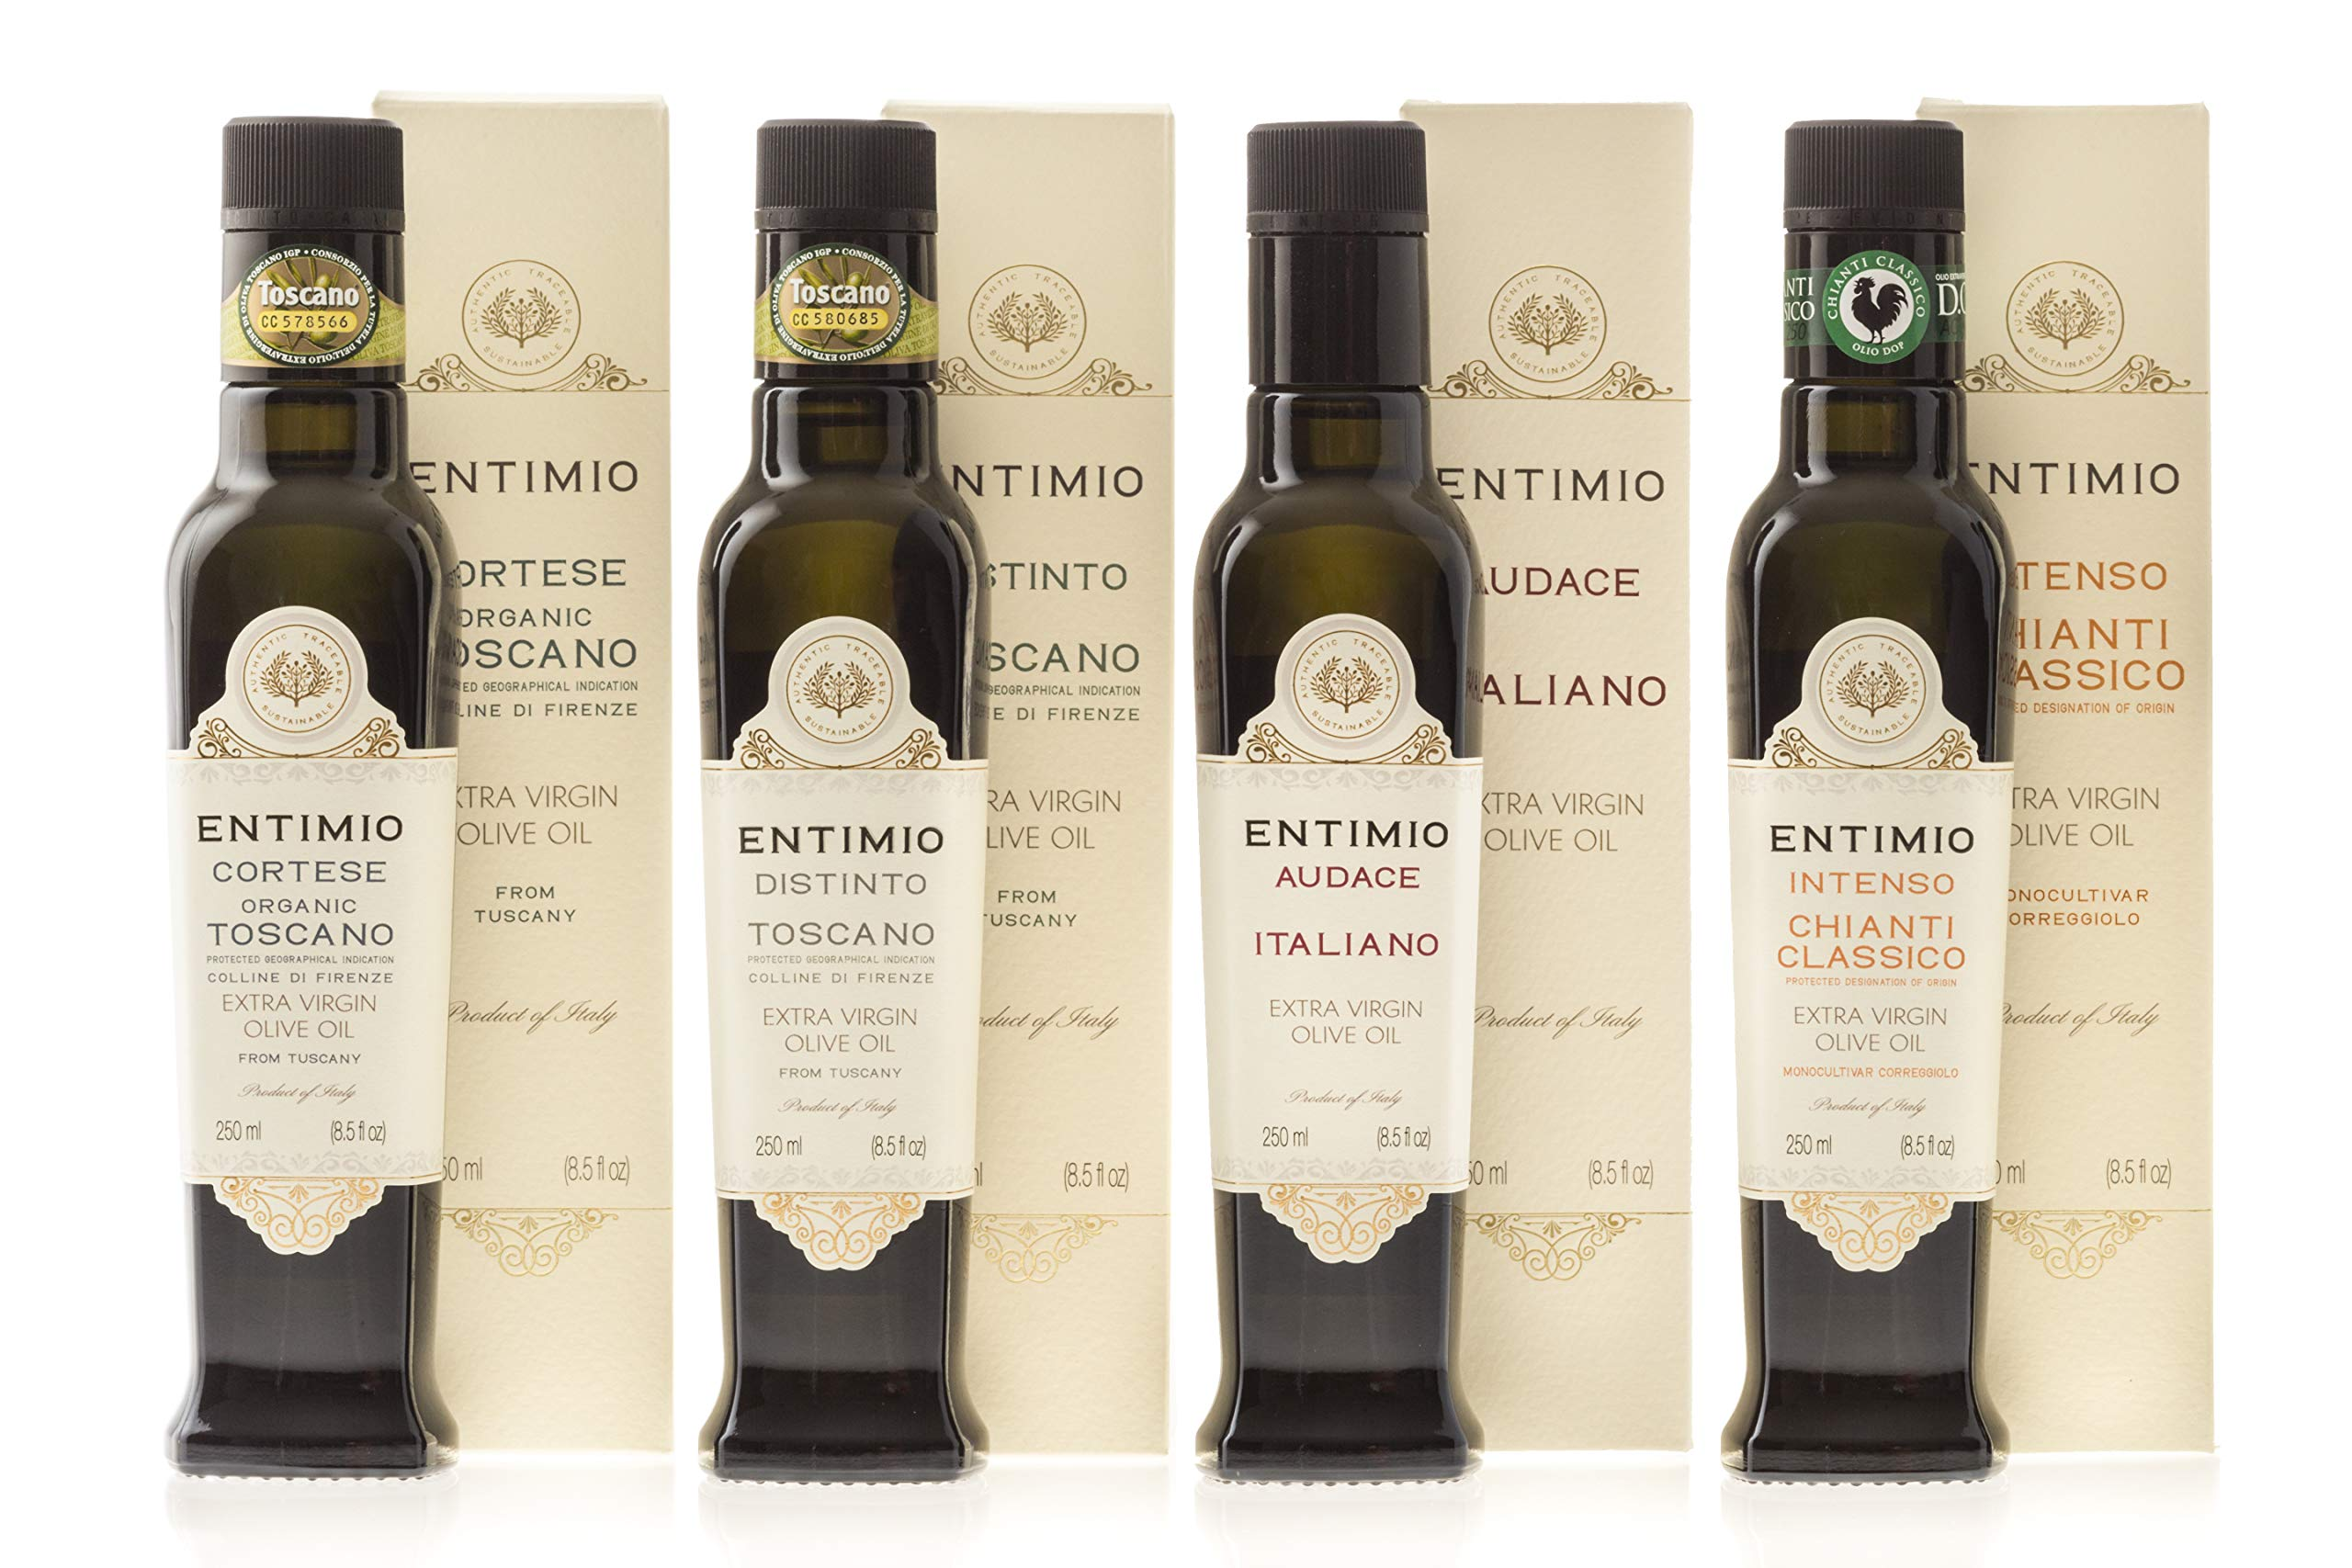 Entimio Collection Gift Box | Tuscany Olive Oil Extra Virgin, from Medium-Delicate to -Robust | 2018 Harvest, 2019 Gold Winners, Italy, High Antioxidants | 33.8 fl oz (Pack of 4 x 8.5 fl oz)